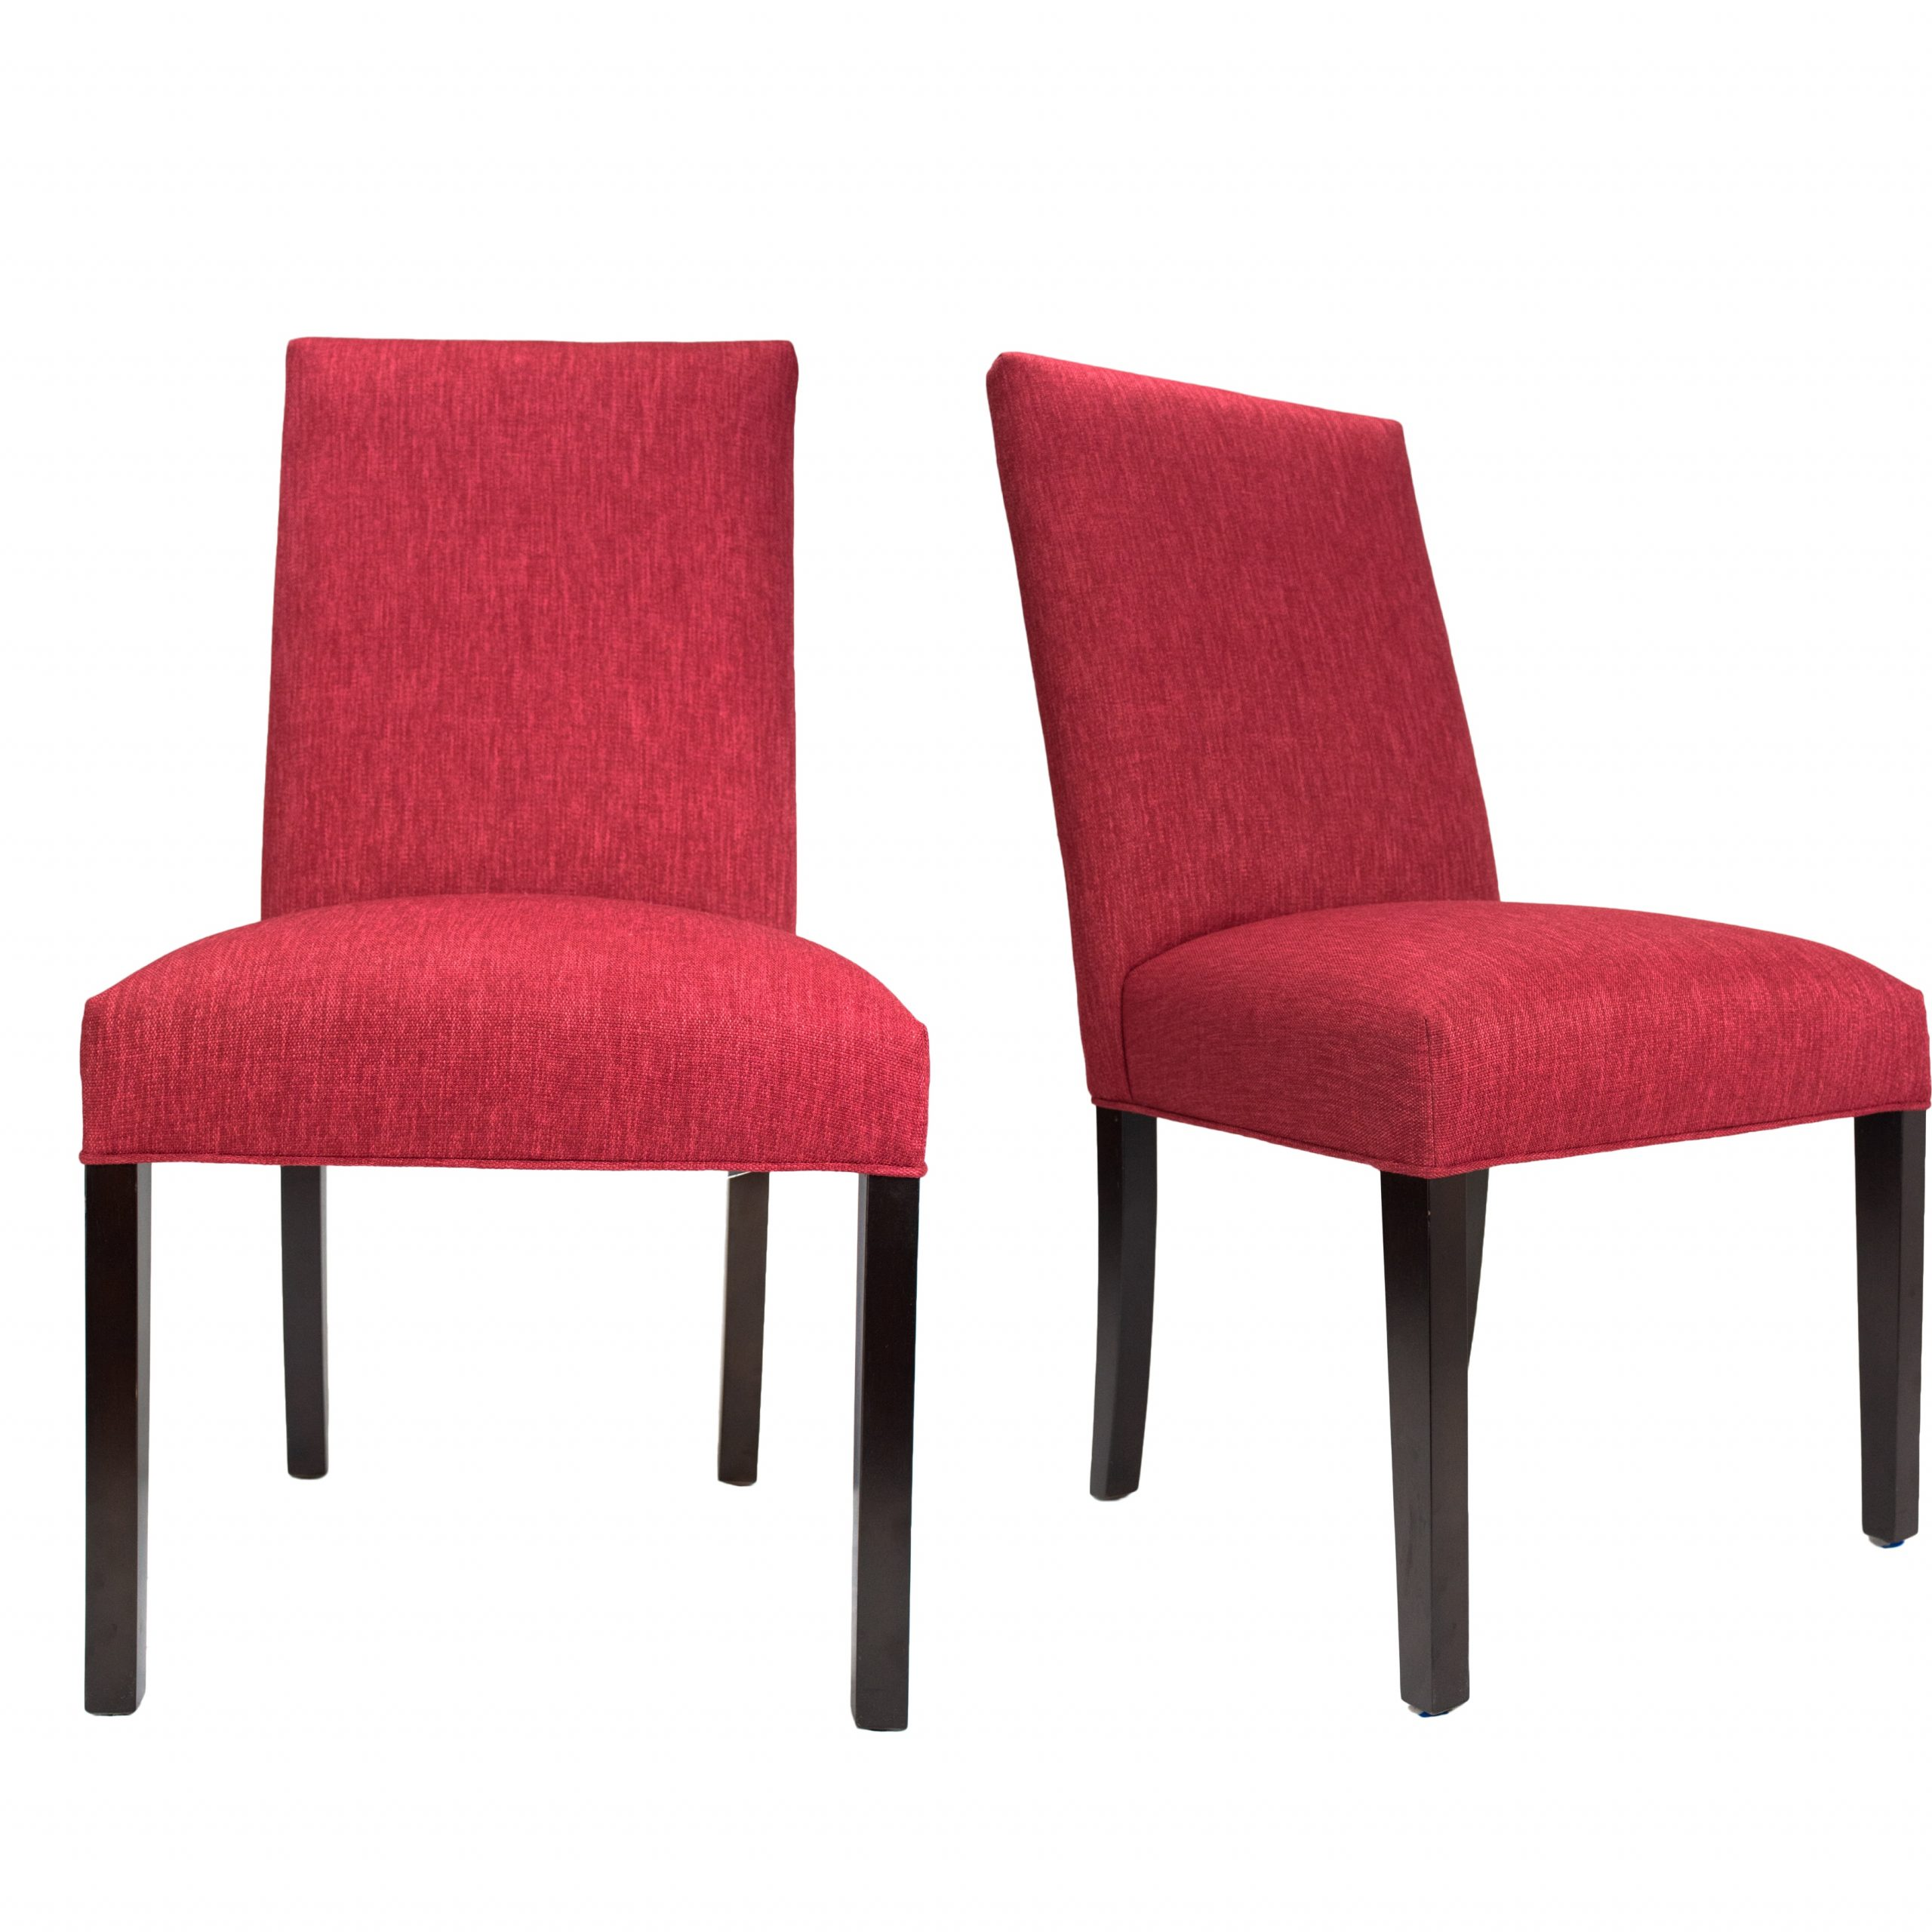 red upholstered dining chairs